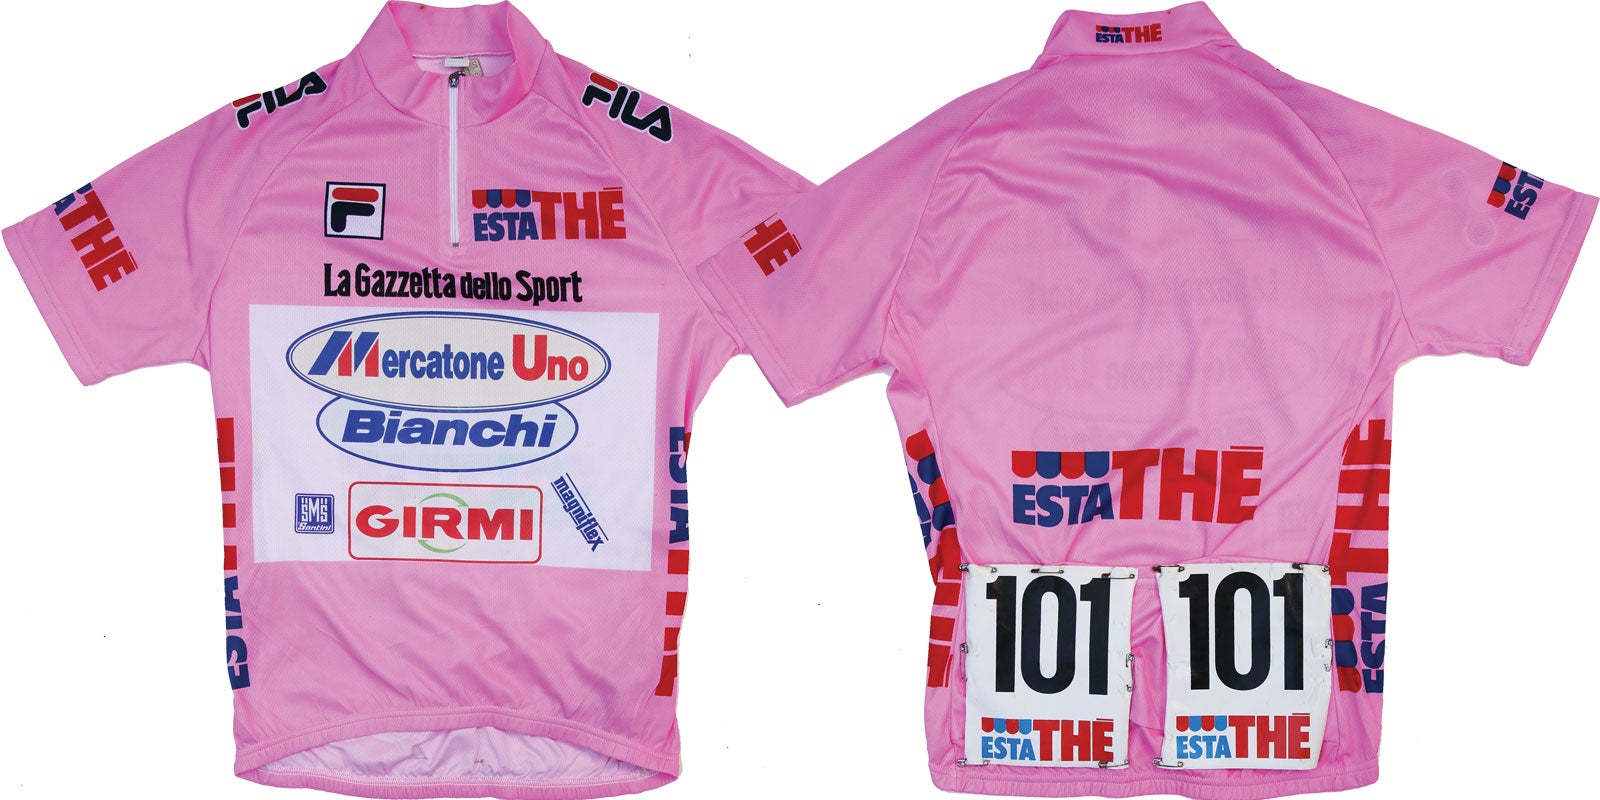 65d8abb97 While Marco Pantani was certainly considered a contender going into the 1998  Giro d Italia